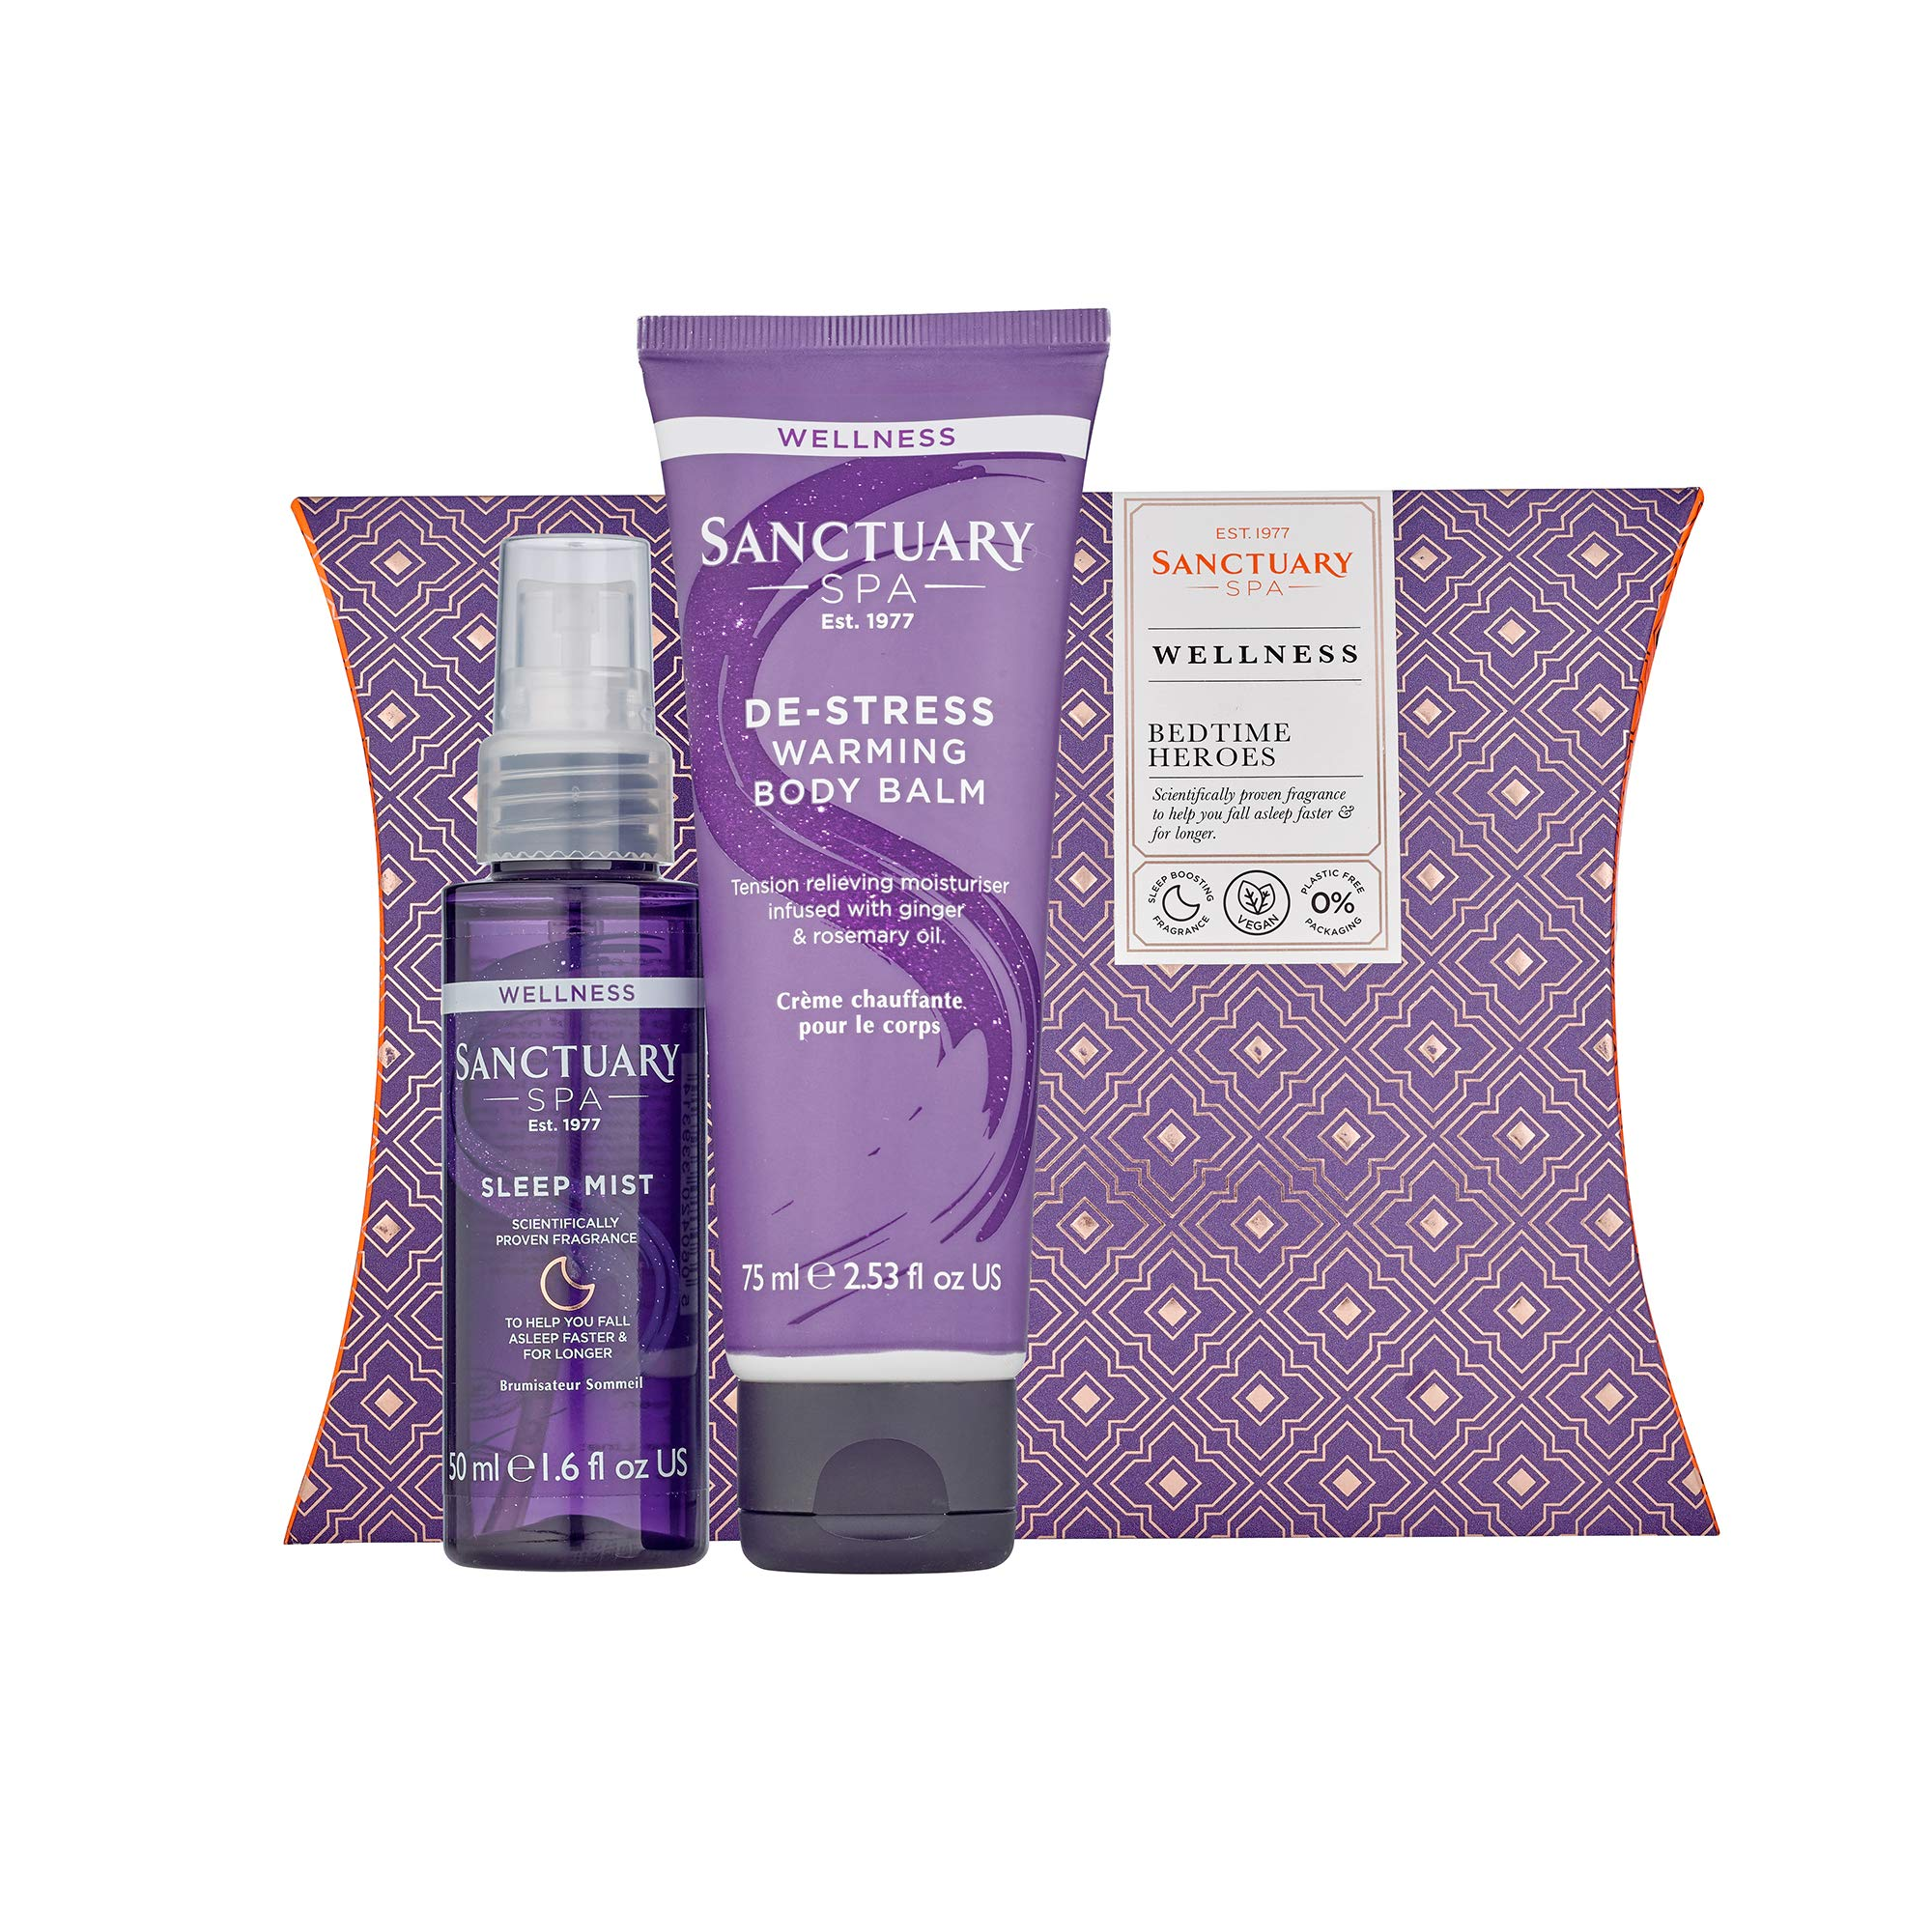 Sanctuary Spa Gift Set, Bedtime Heroes Wellness Gift With Sleep Mist Pillow Spray and Warming Muscle Rub Balm, Vegan, Gift for Her, Gifts for Women, Birthday